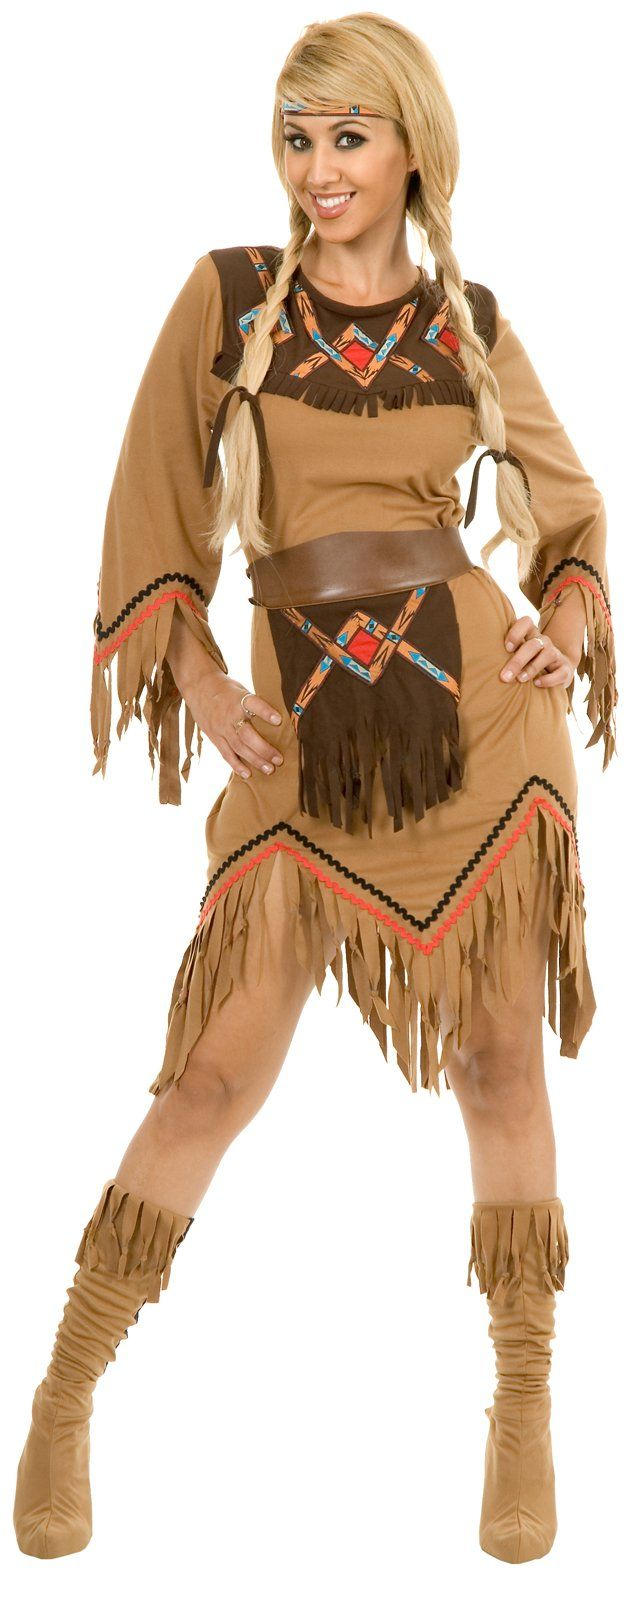 Sacajawea Indian Maiden Adult Costume from BuyCostumes.com